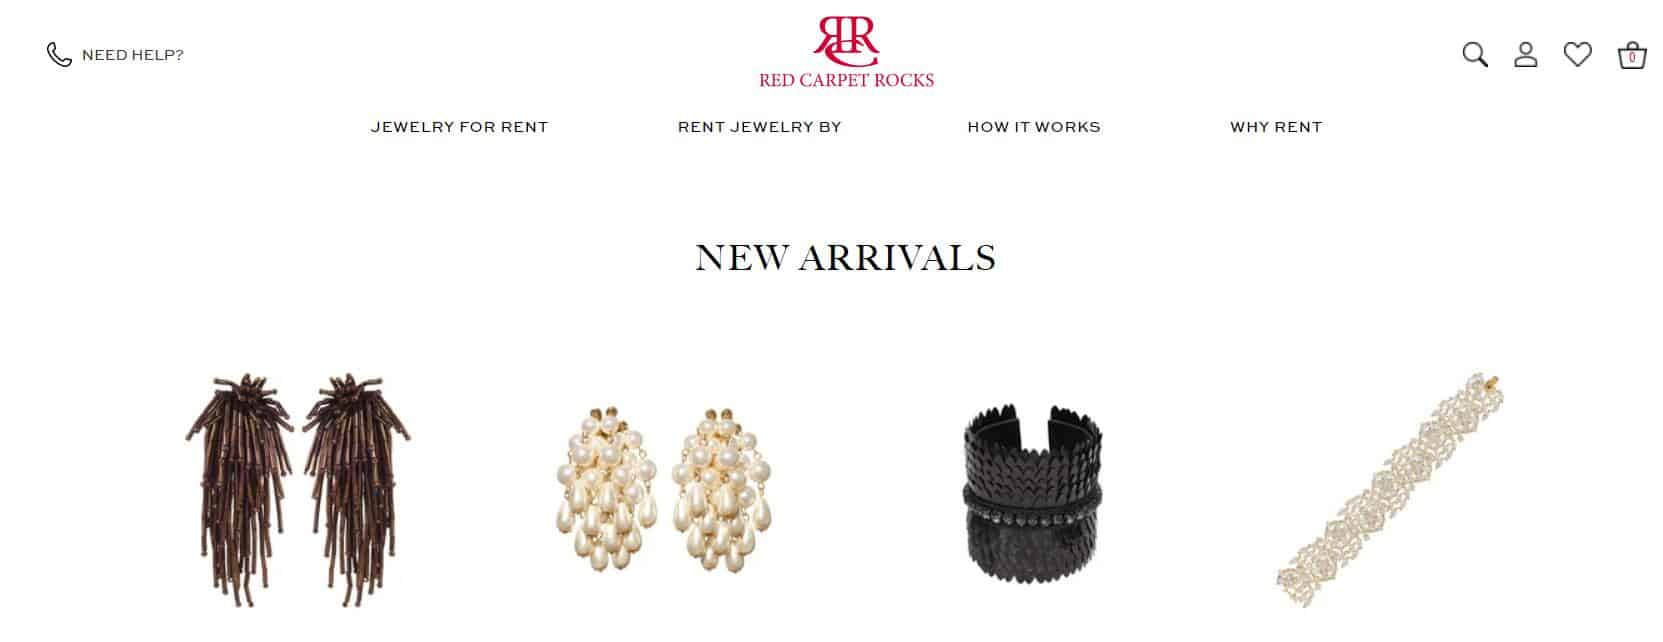 Red Carpet Rocks Jewelry Rental